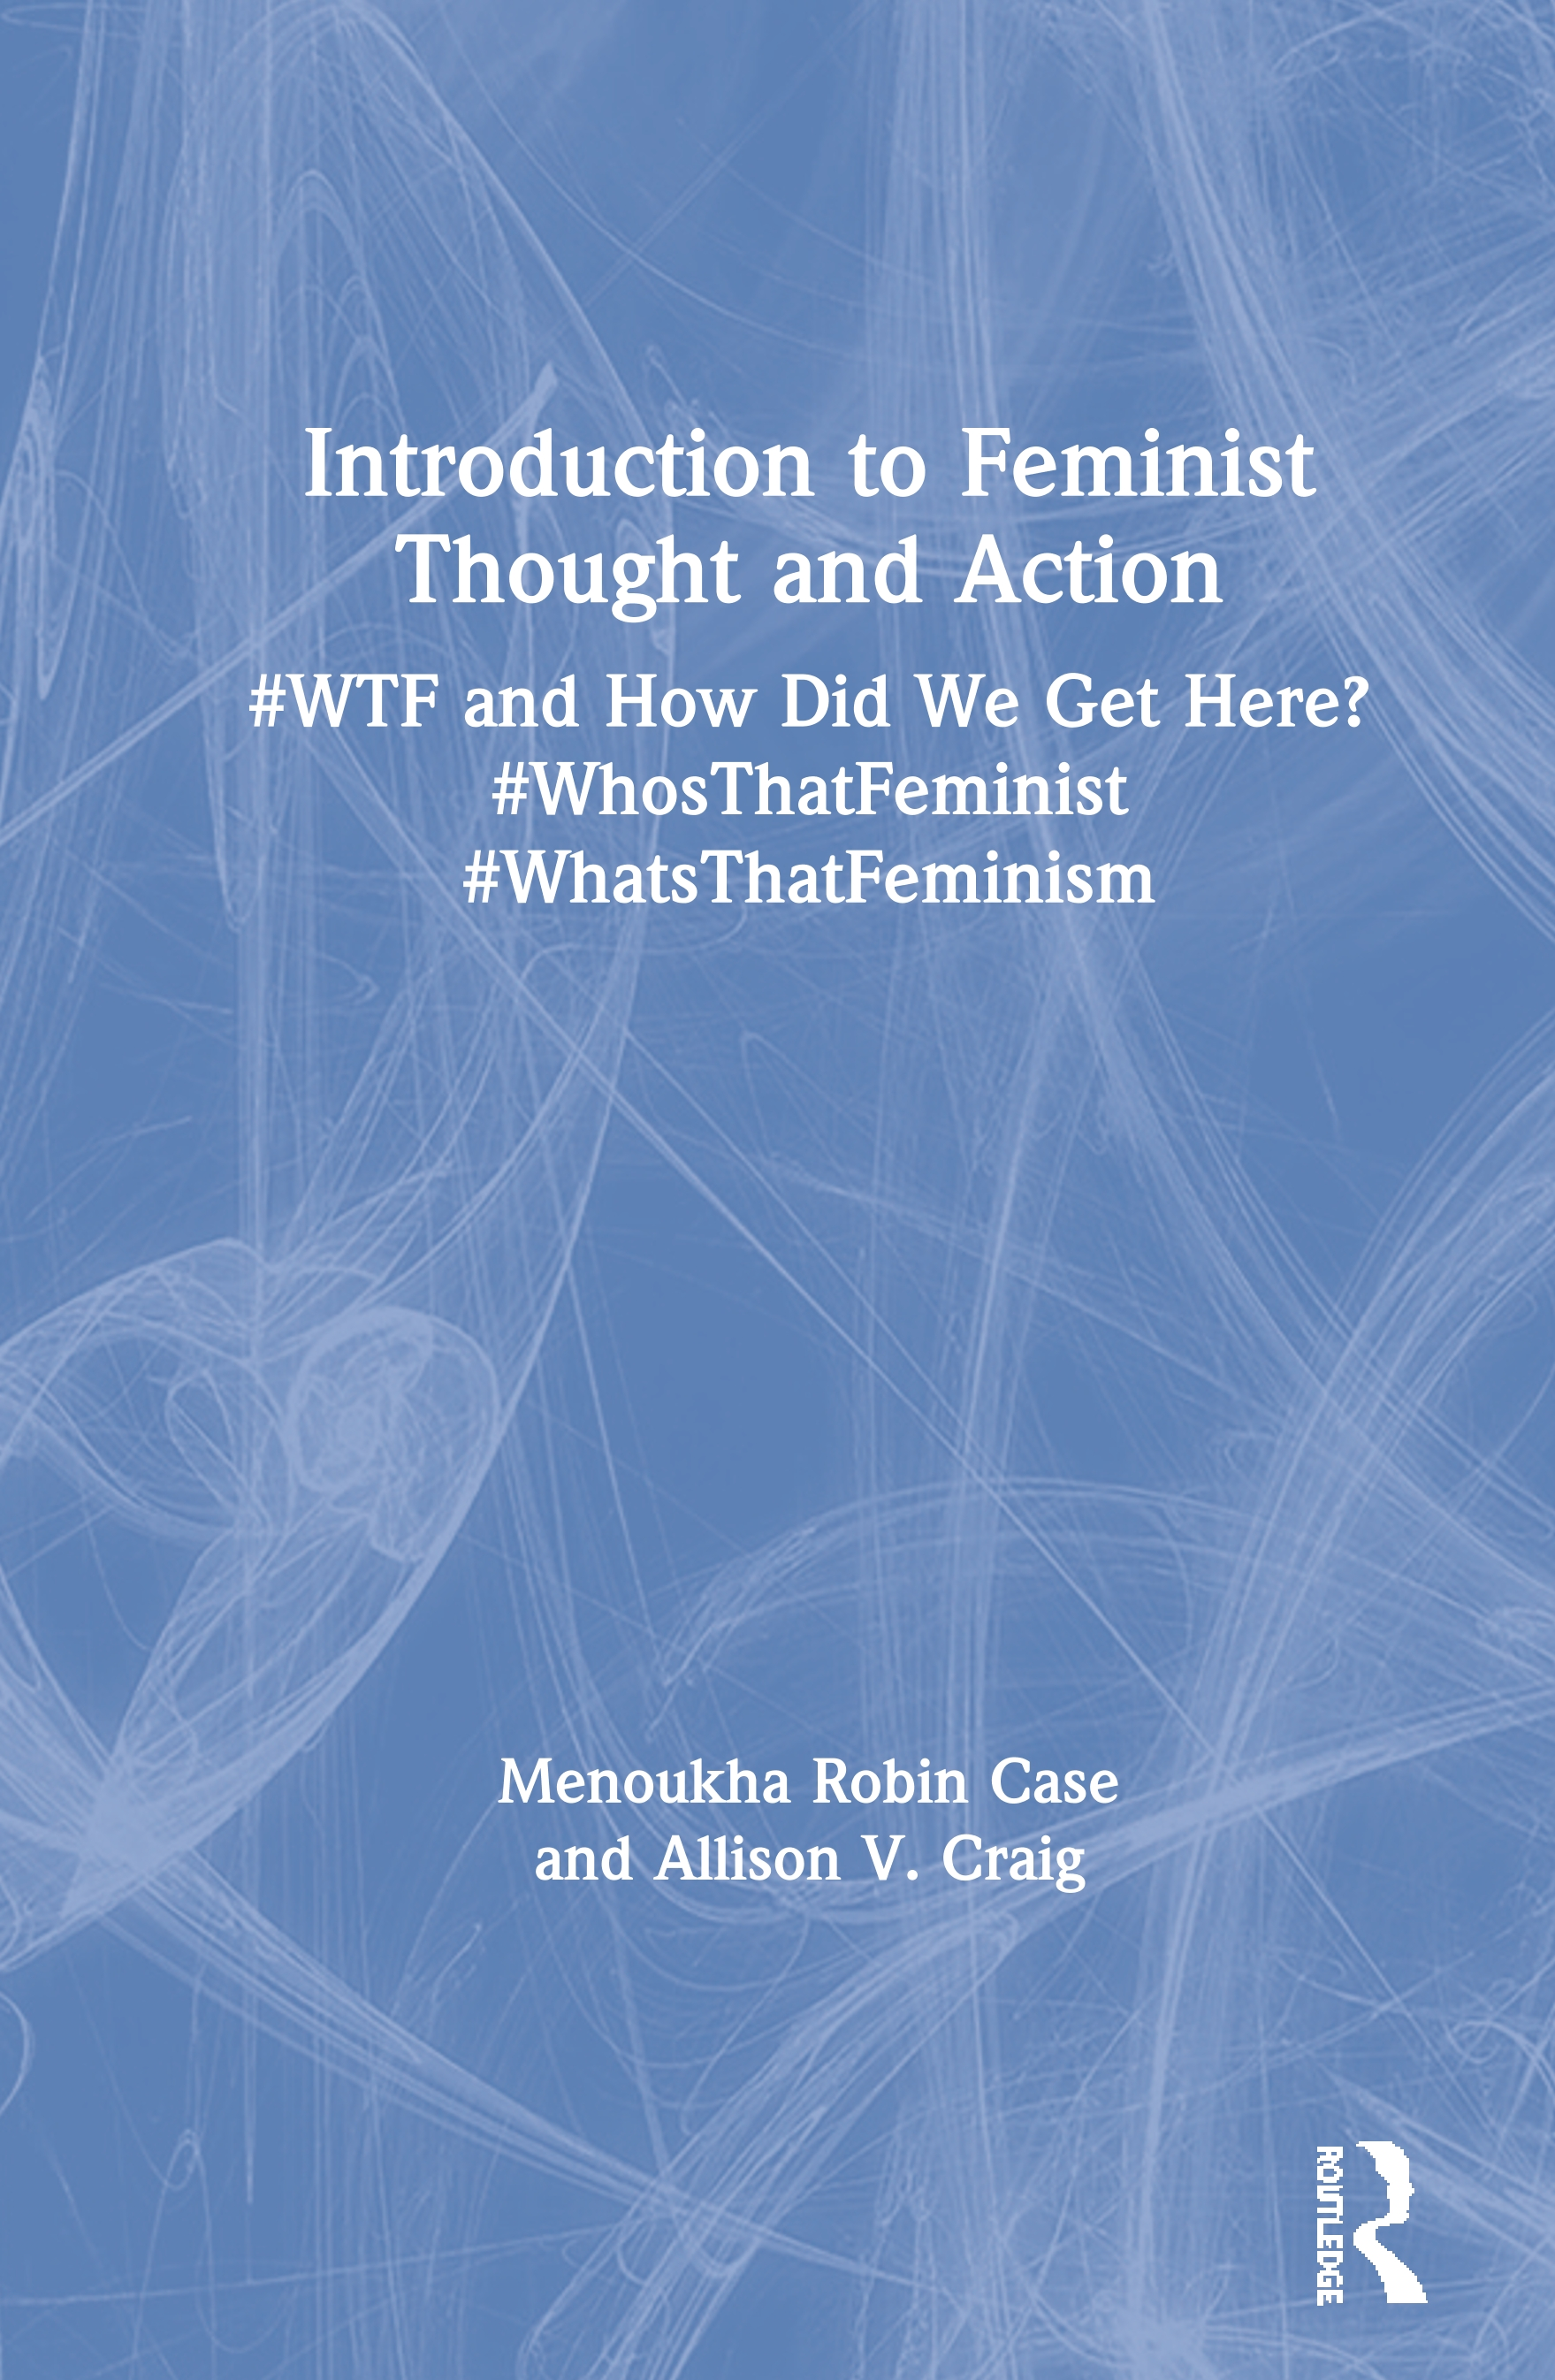 Introduction to Feminist Thought and Action: #WTF and How Did We Get Here? #WhosThatFeminist #WhatsThatFeminism book cover